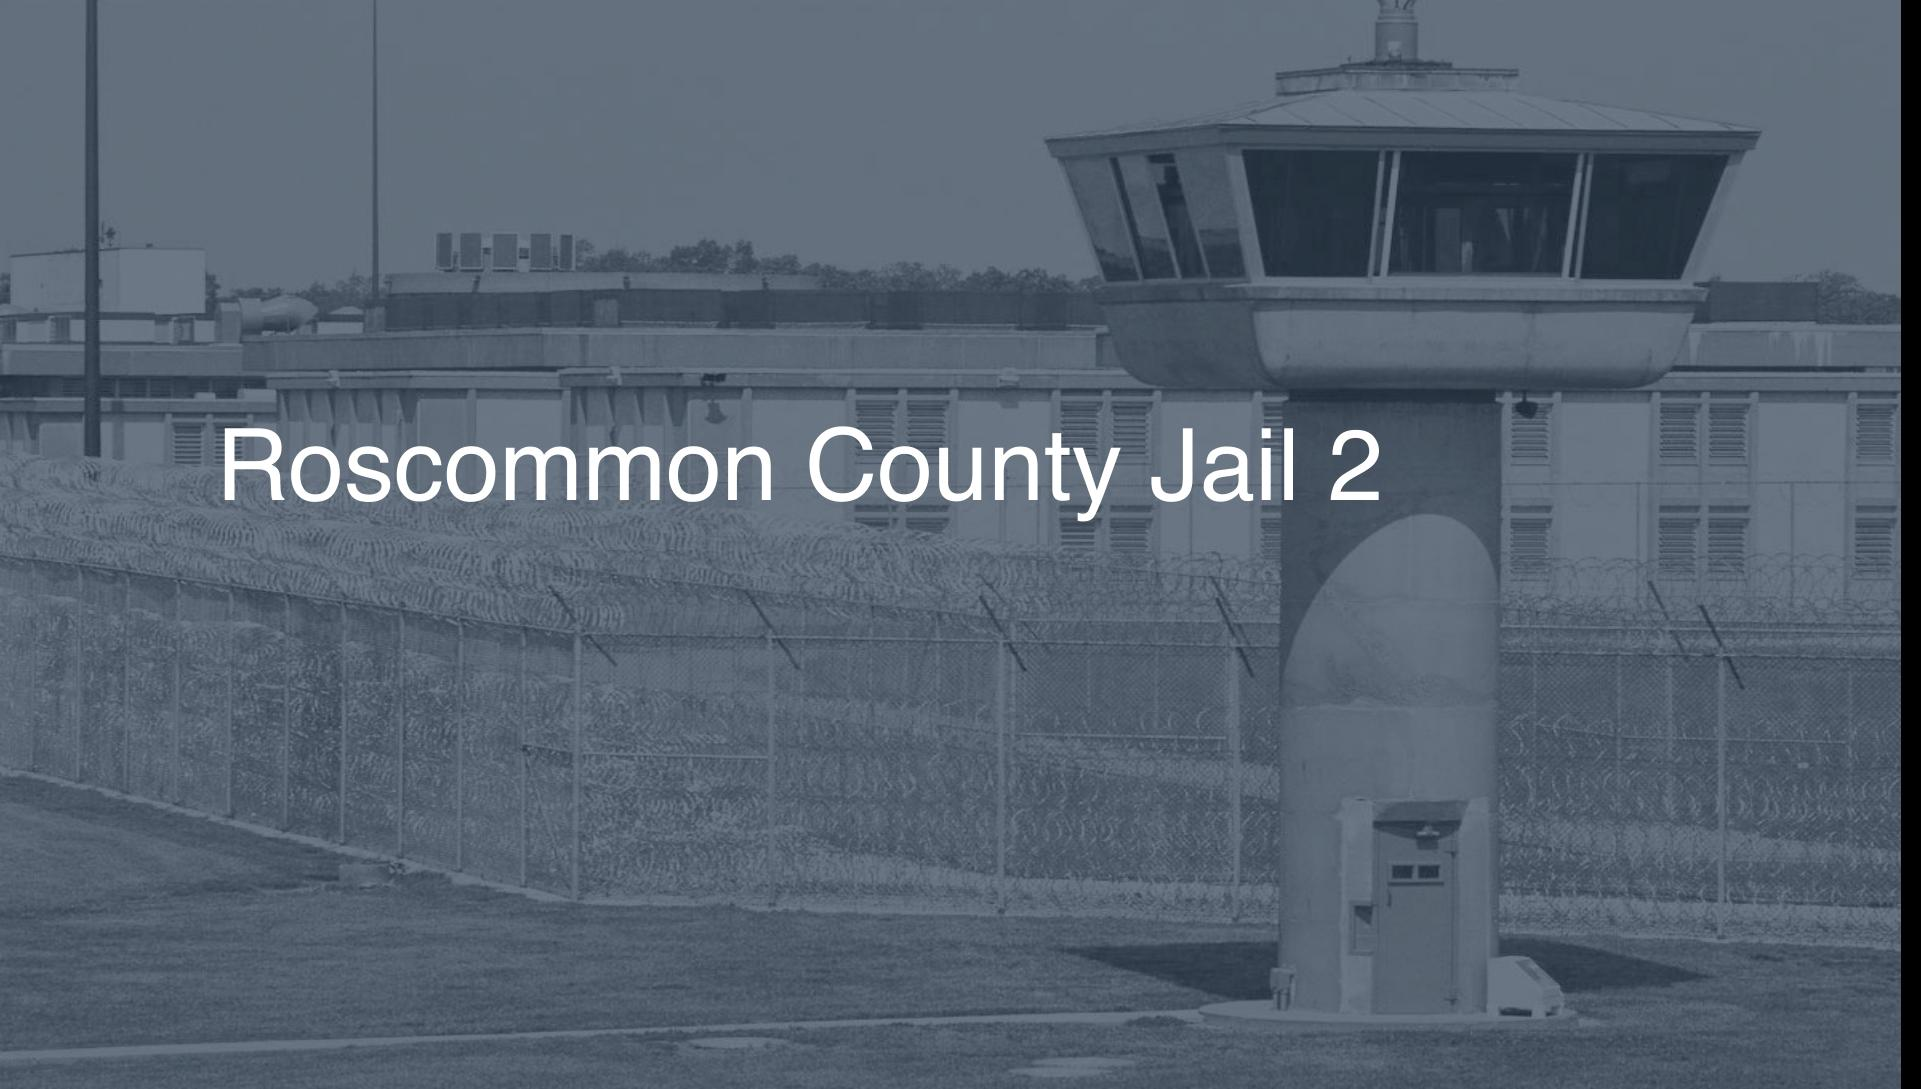 Roscommon County Jail correctional facility picture